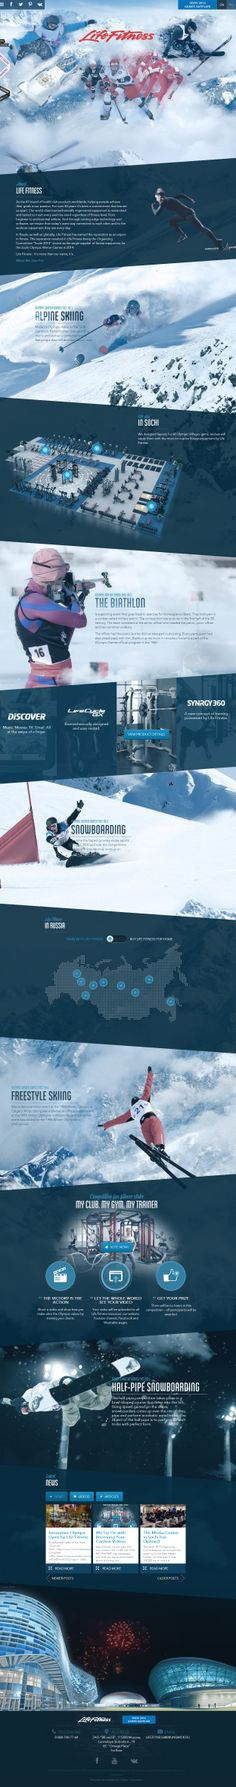 Winner 27 September 2013 Life Fitness at Sochi 2014 by Green Chameleon. A one page promotional website for Life Fitness and their involvement at Sochi Web Design Awards, Web Ui Design, Best Web Design, Page Design, Webdesign Layouts, Responsive Layout, Webdesign Inspiration, Website Design Inspiration, Web Layout